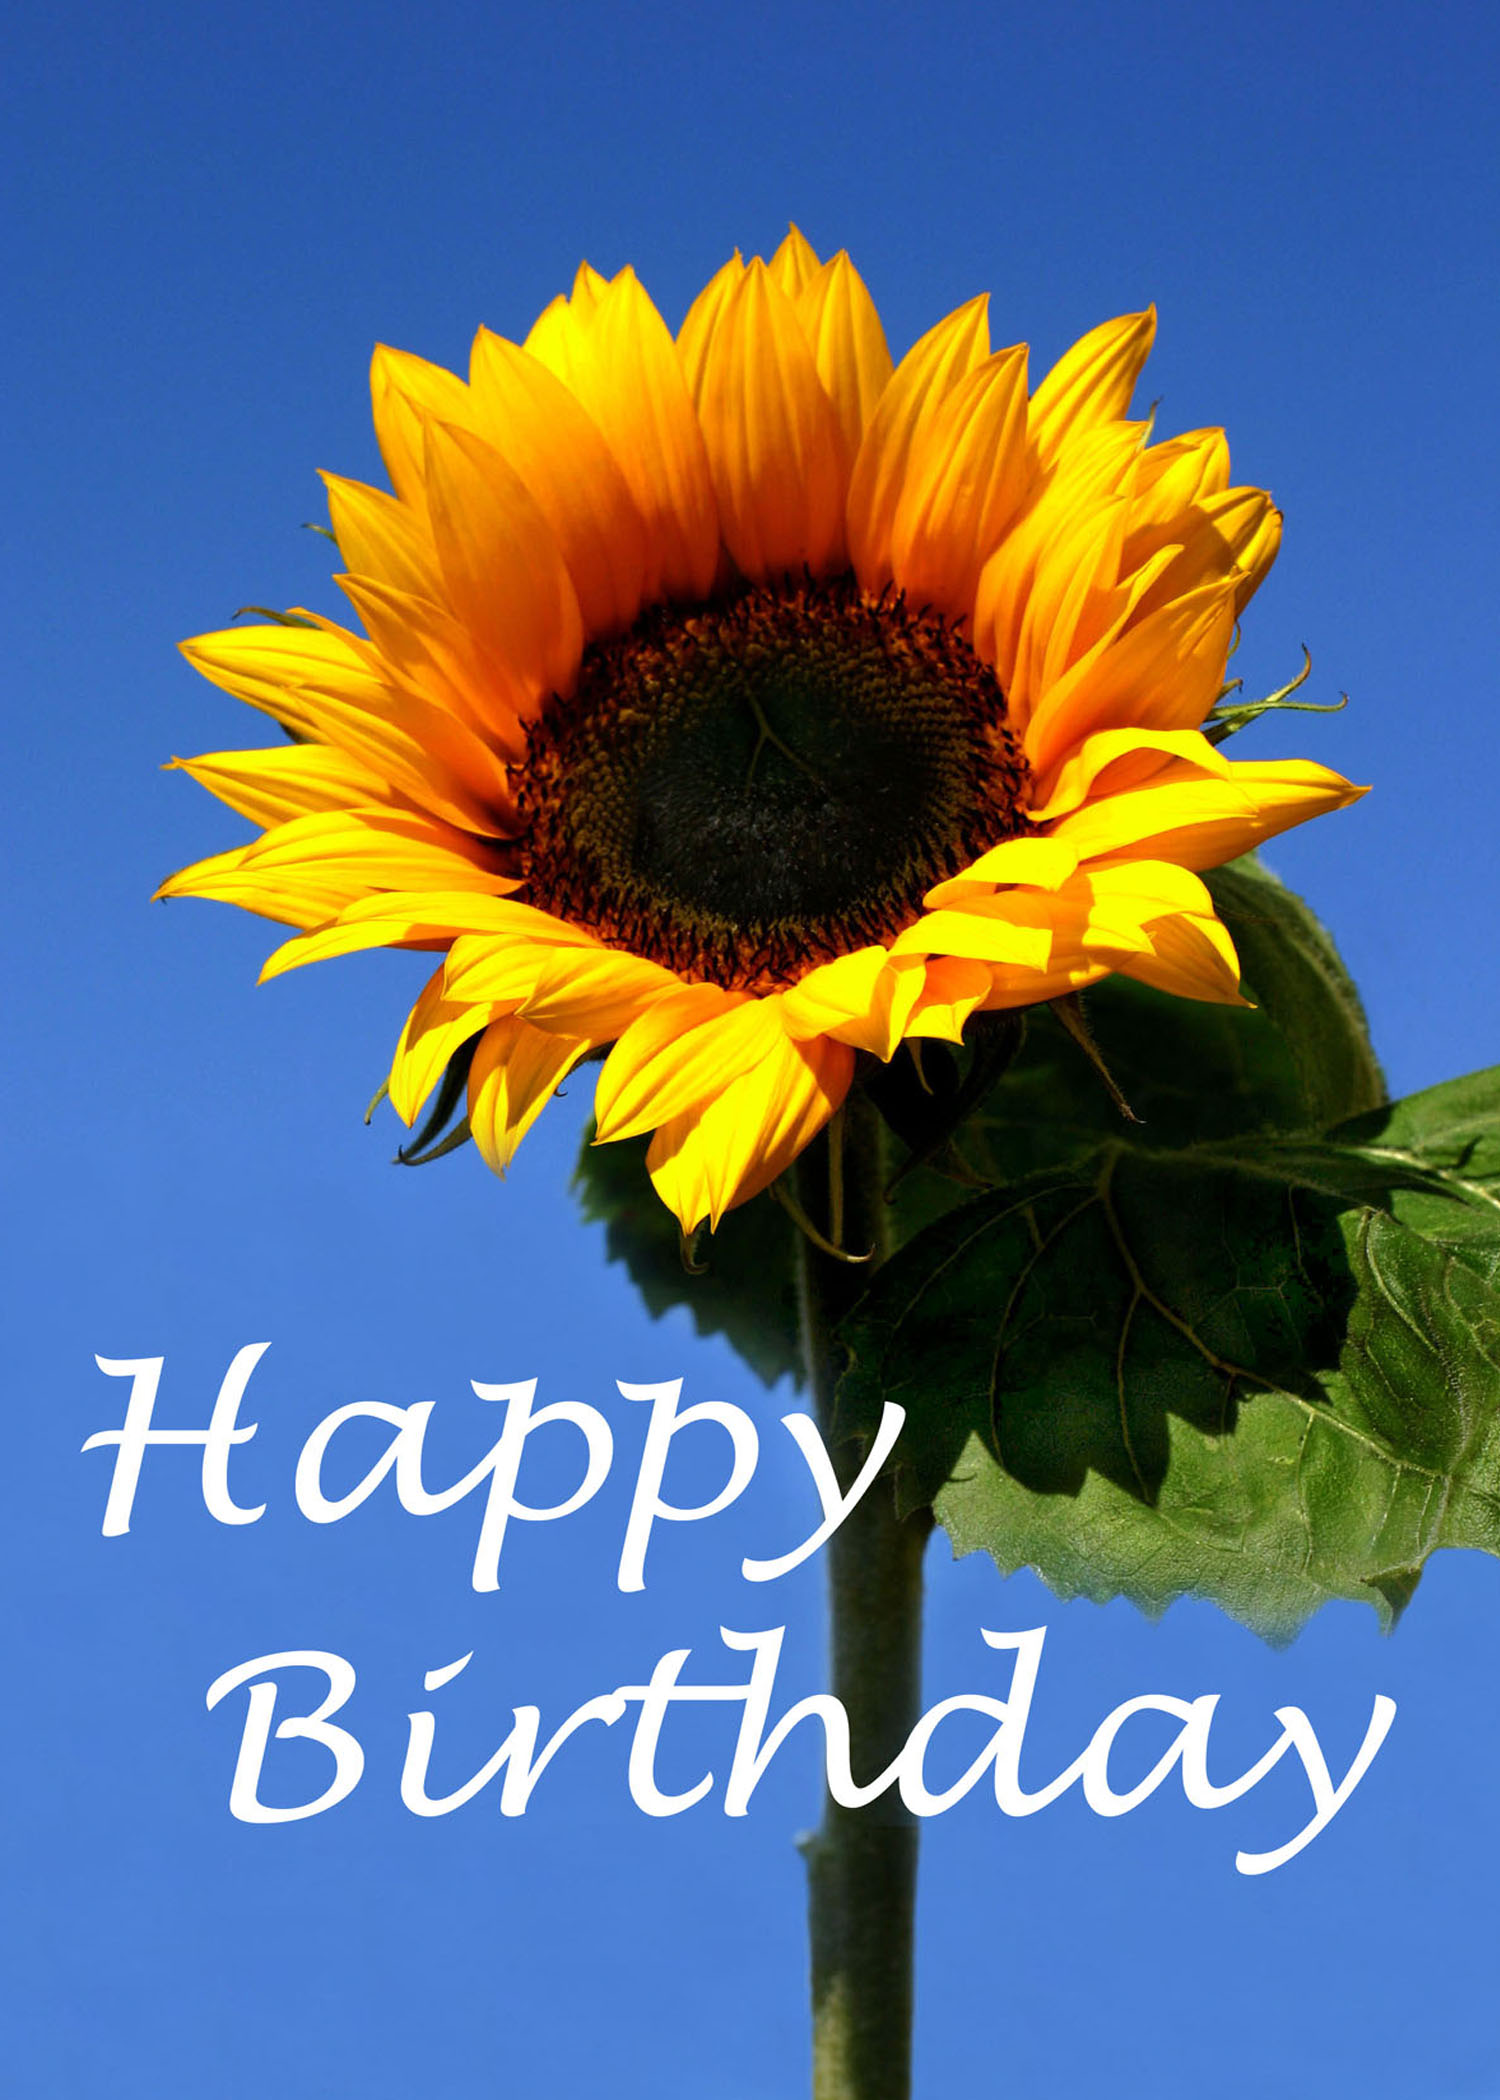 happy birthday sunflowers ; SALE-6X4-409